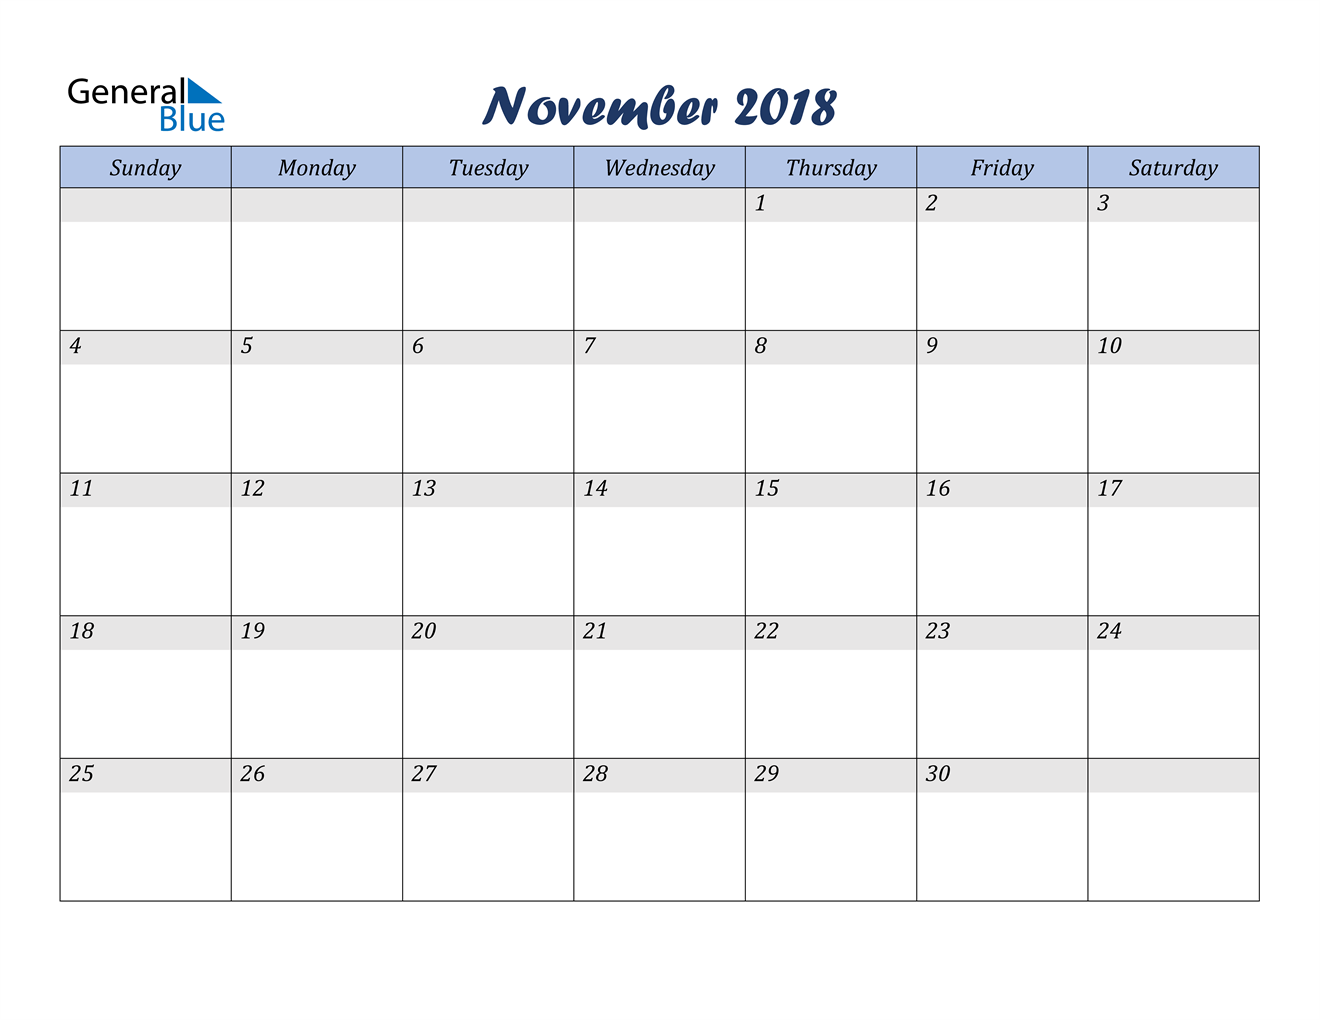 Image of November 2018 Italicized and Cool Blue, A Fun Calendar in PDF, Word and Excel Calendar